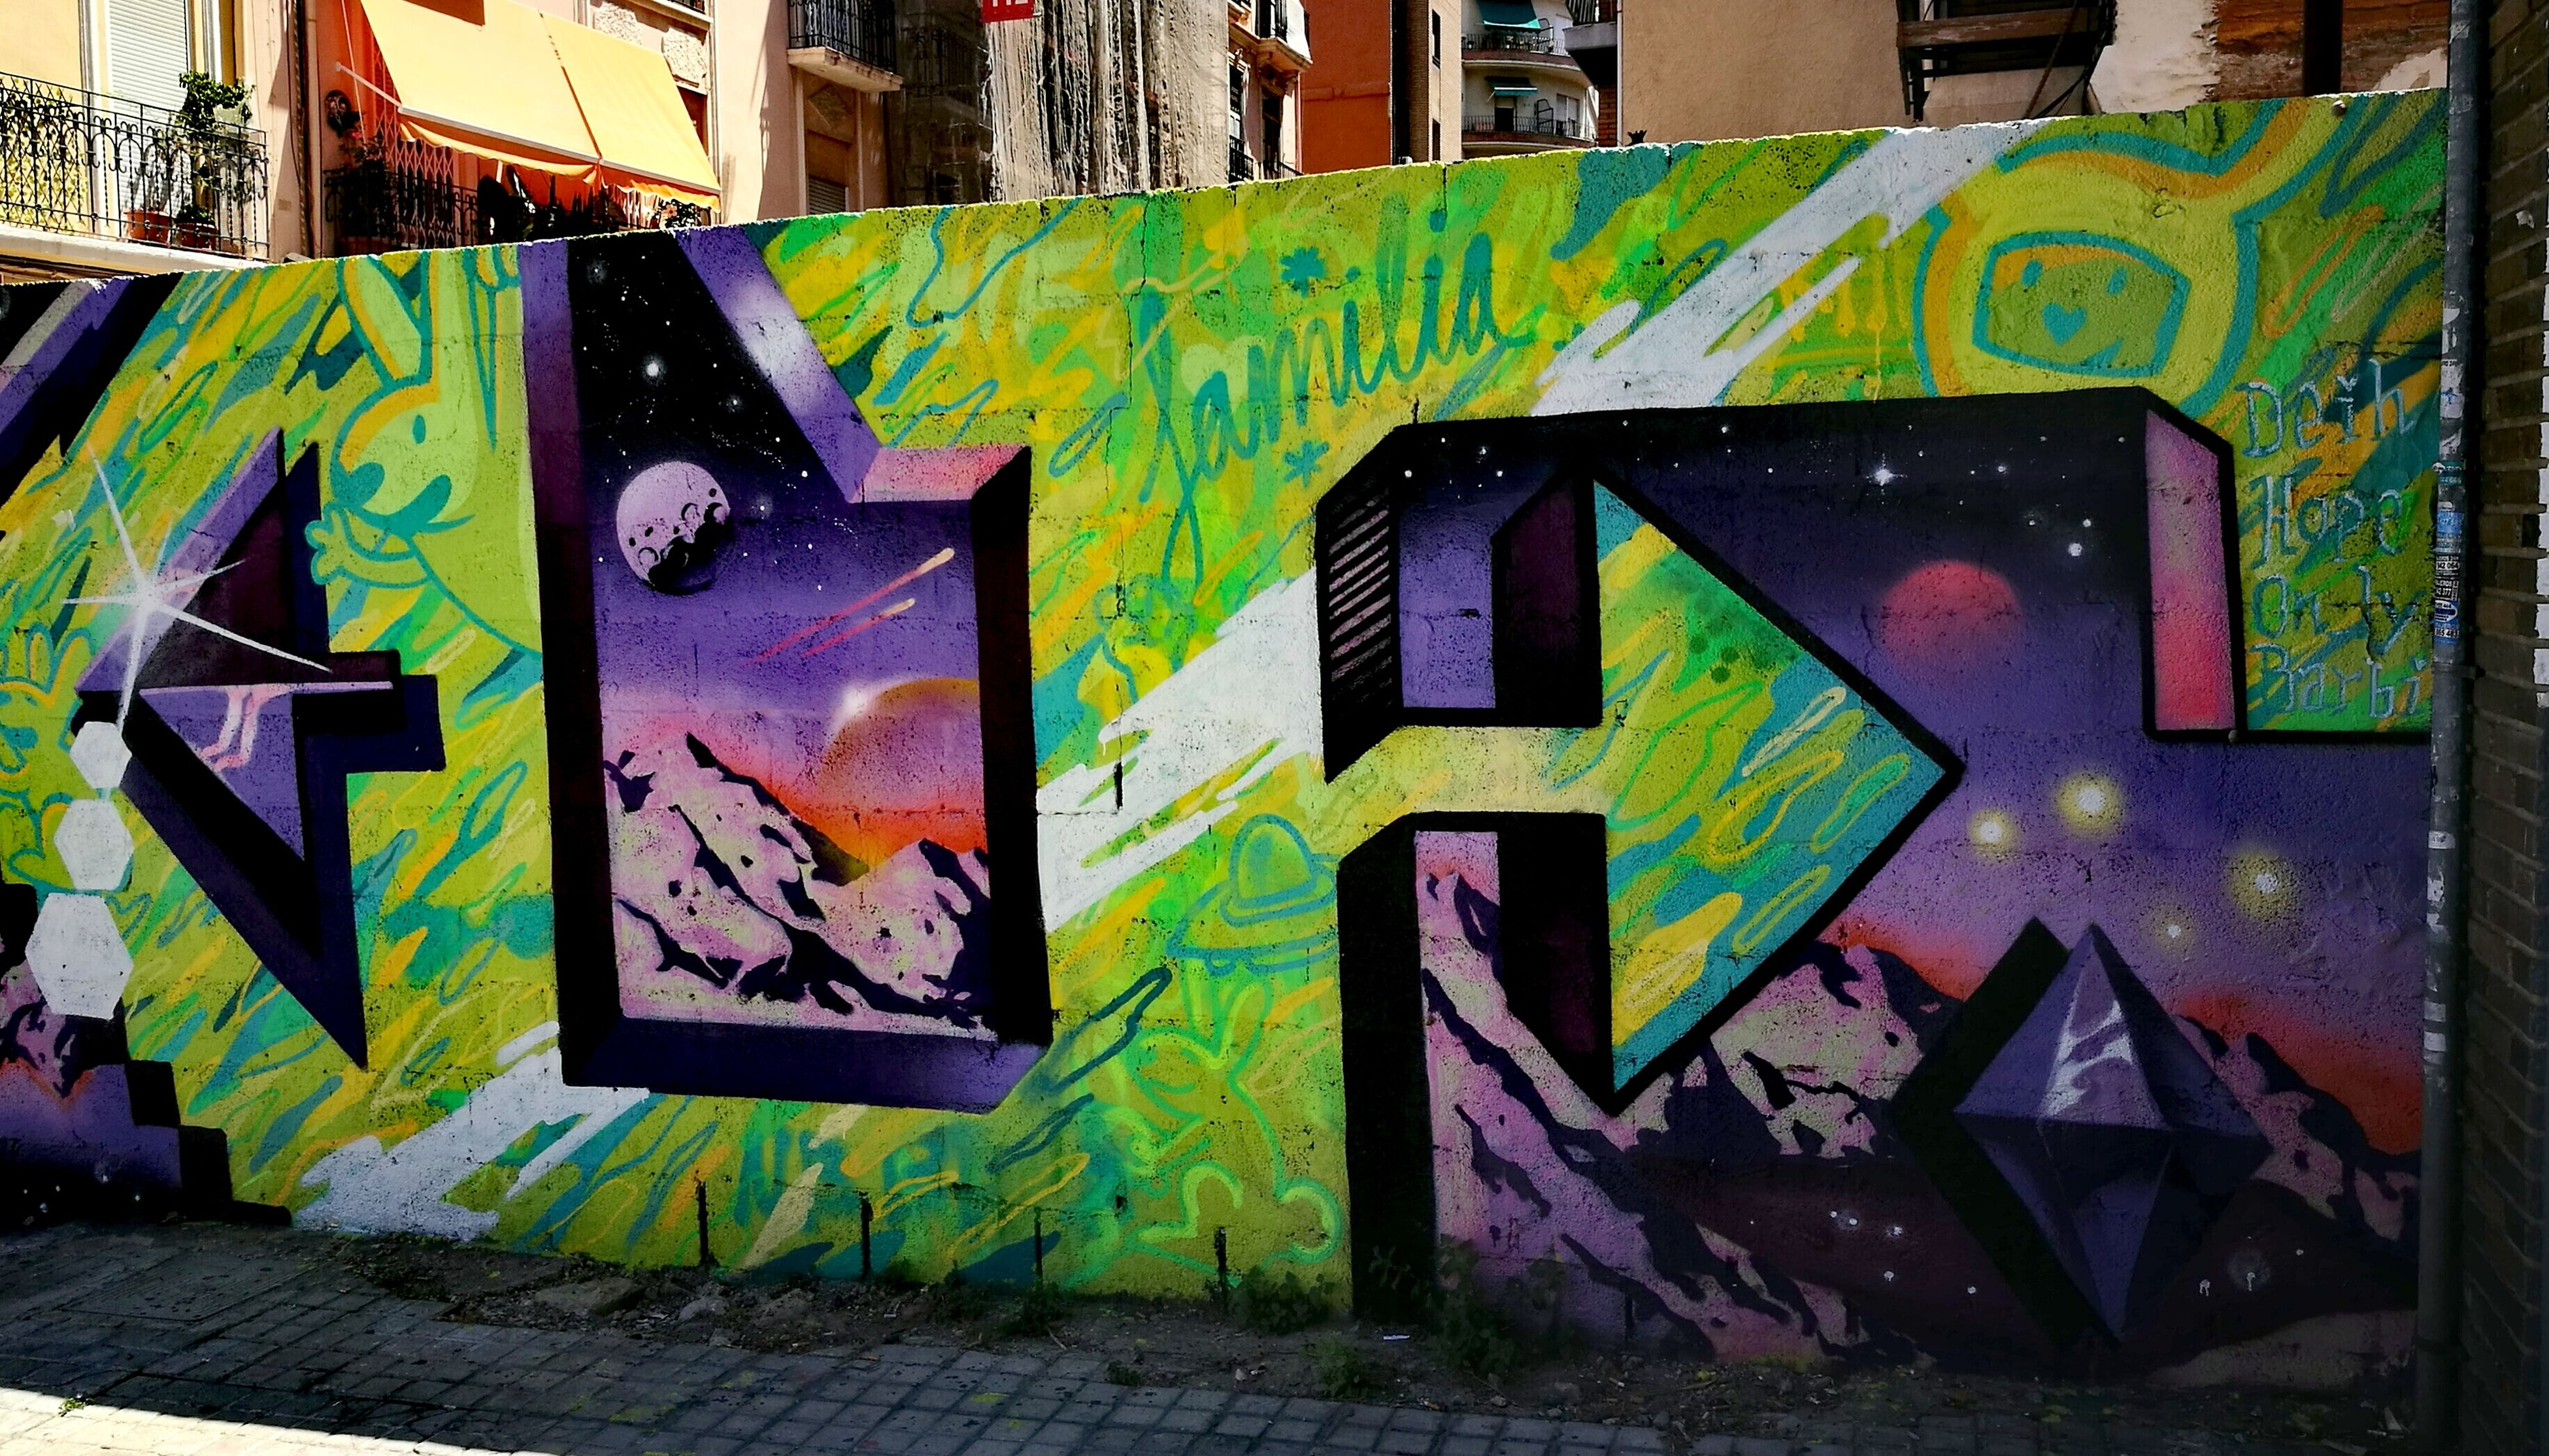 graffiti, architecture, art and craft, built structure, street art, multi colored, communication, city, outdoors, building exterior, day, no people, ghetto, close-up